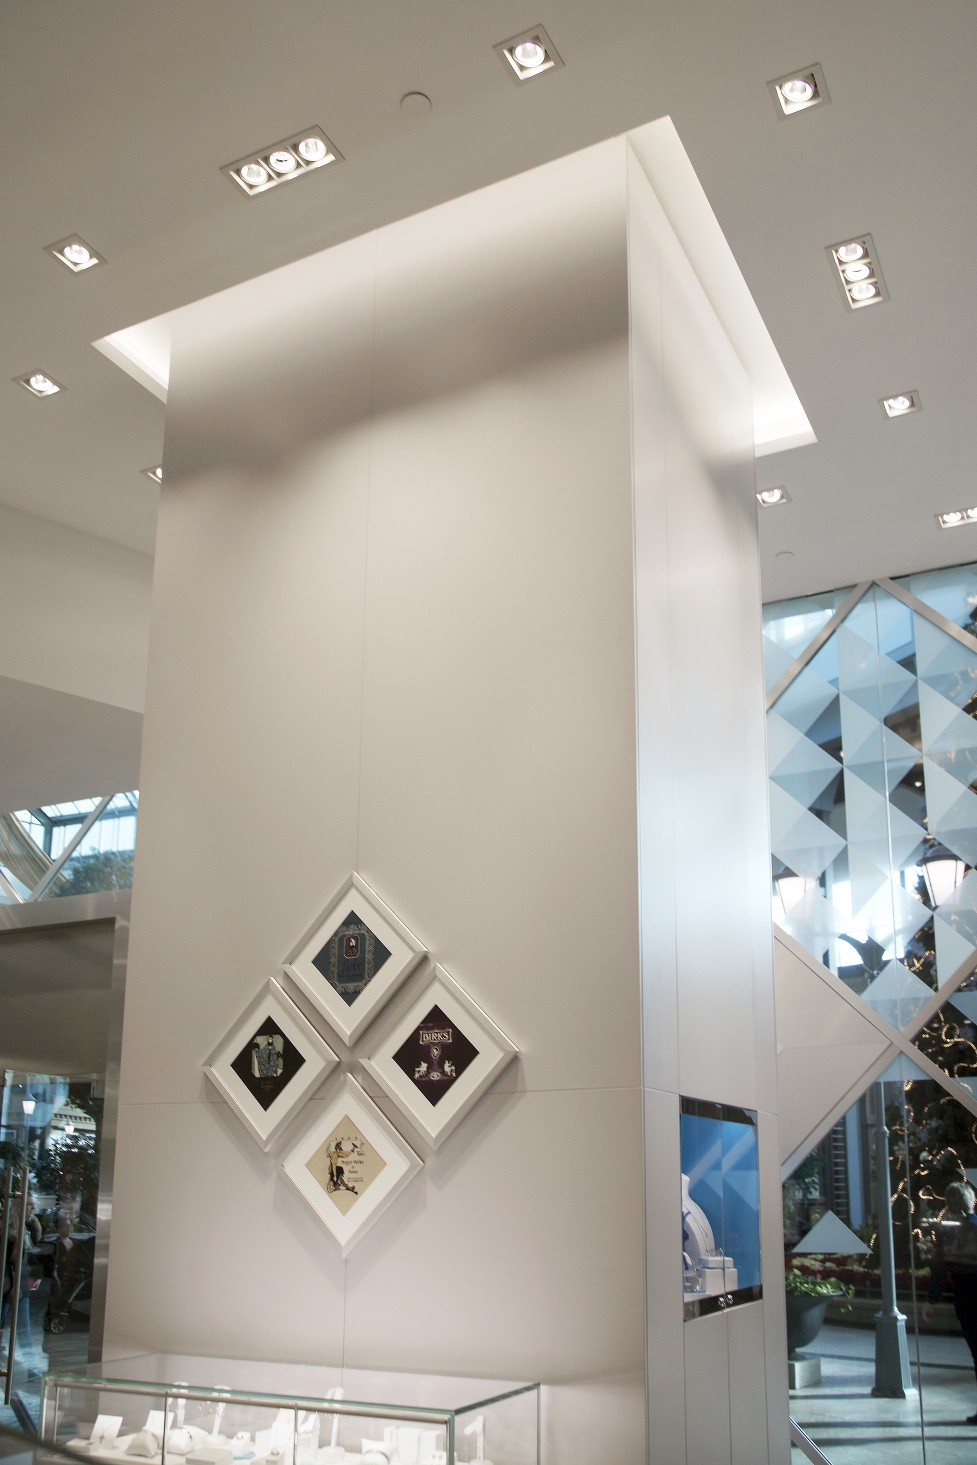 Installed in the ceiling throughout the store, the luminaires illuminate the displays, while also providing general lighting for the sales floor.